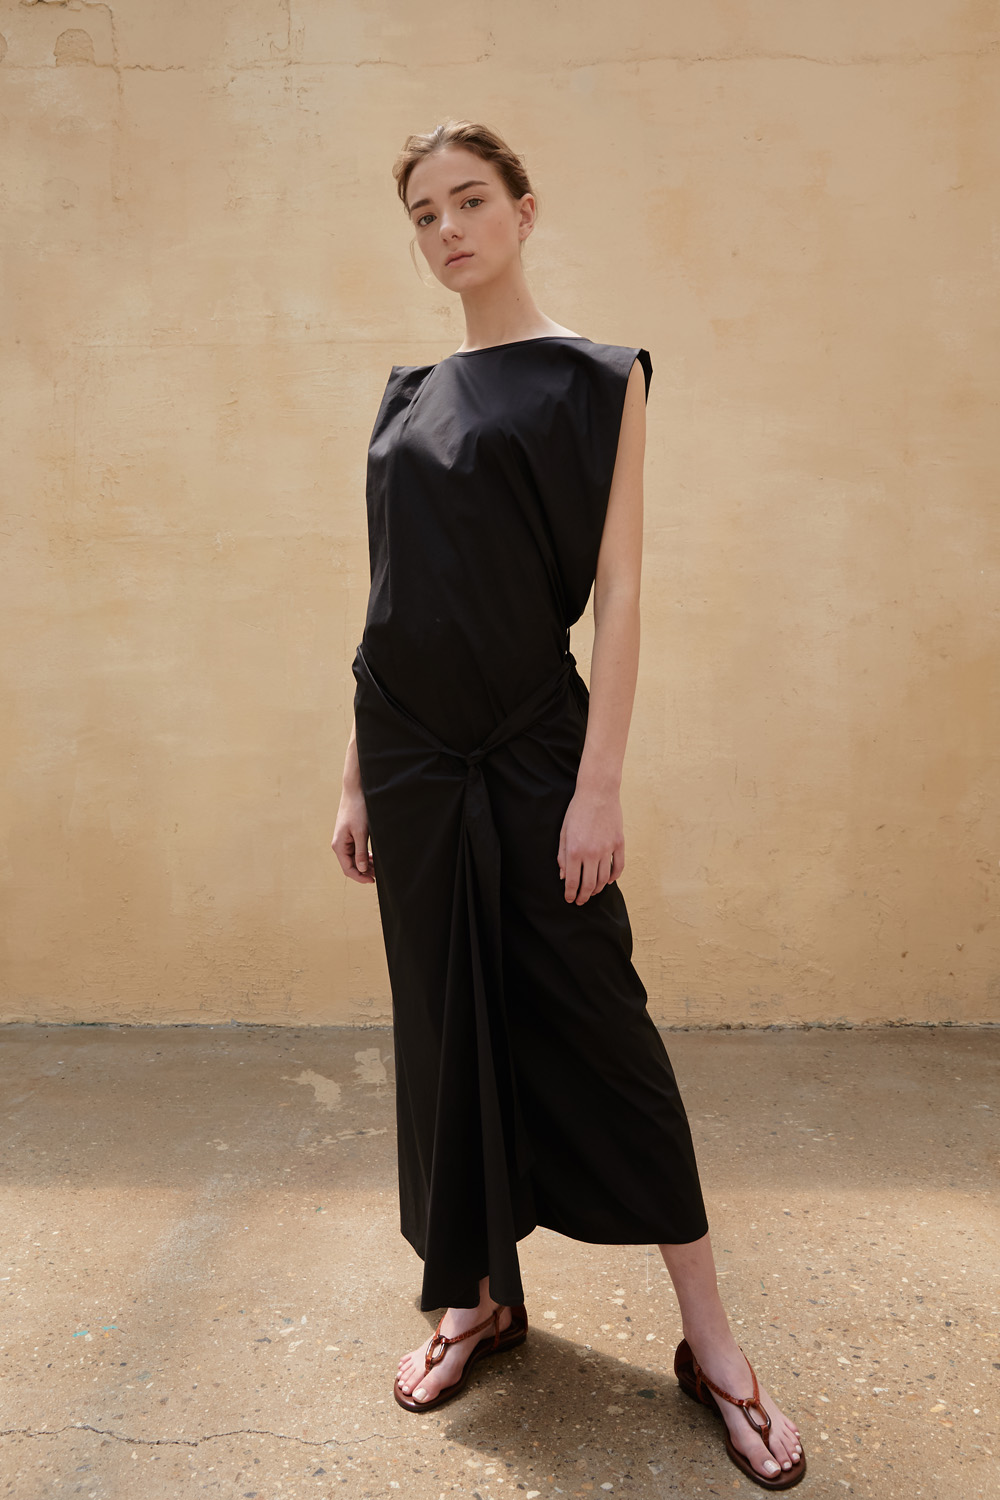 Dress Sleeveless Atypical Black